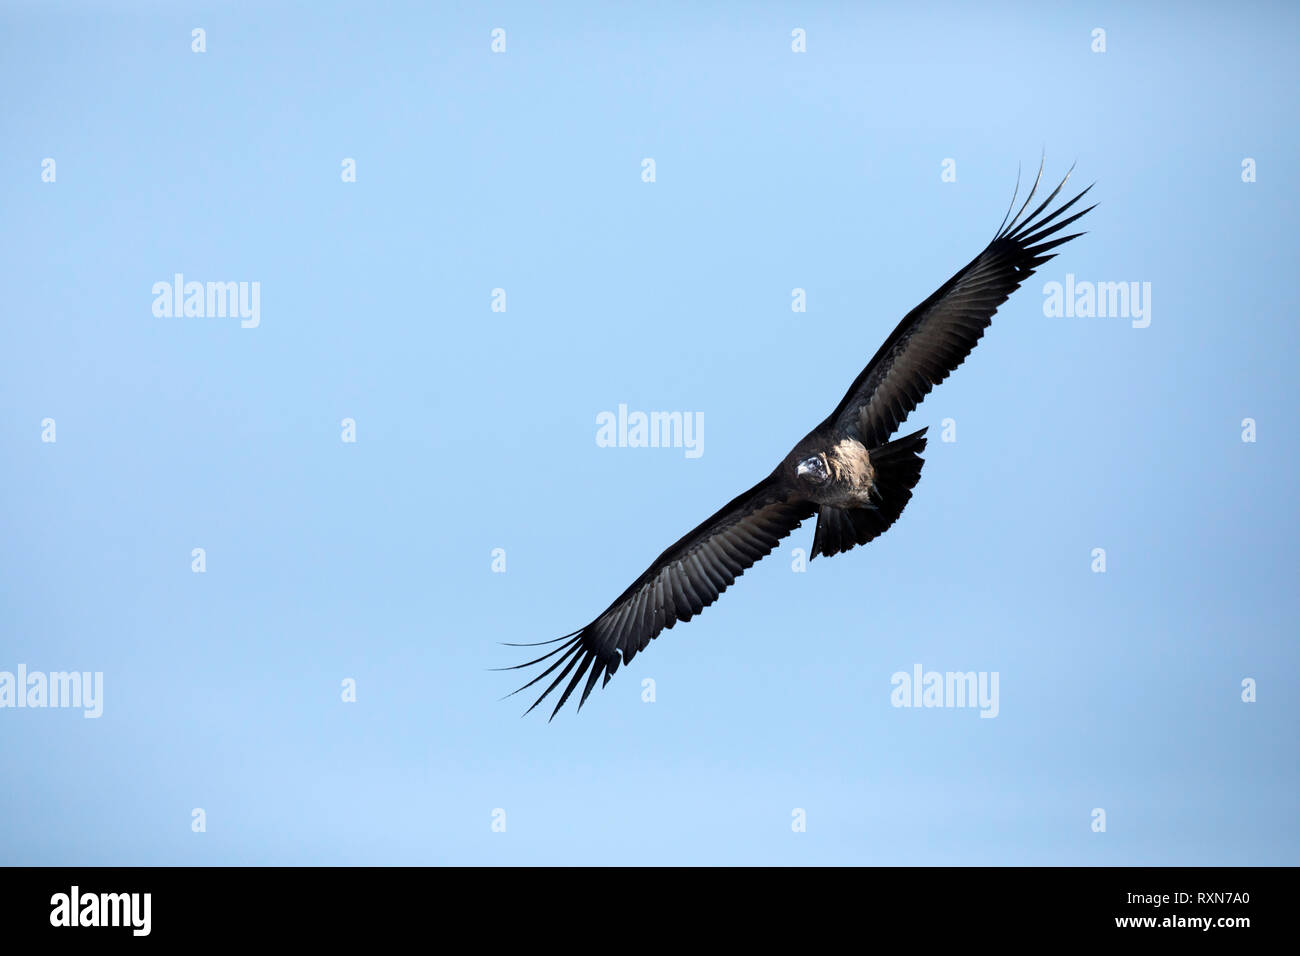 A Vulture soaring in the sky - Stock Image